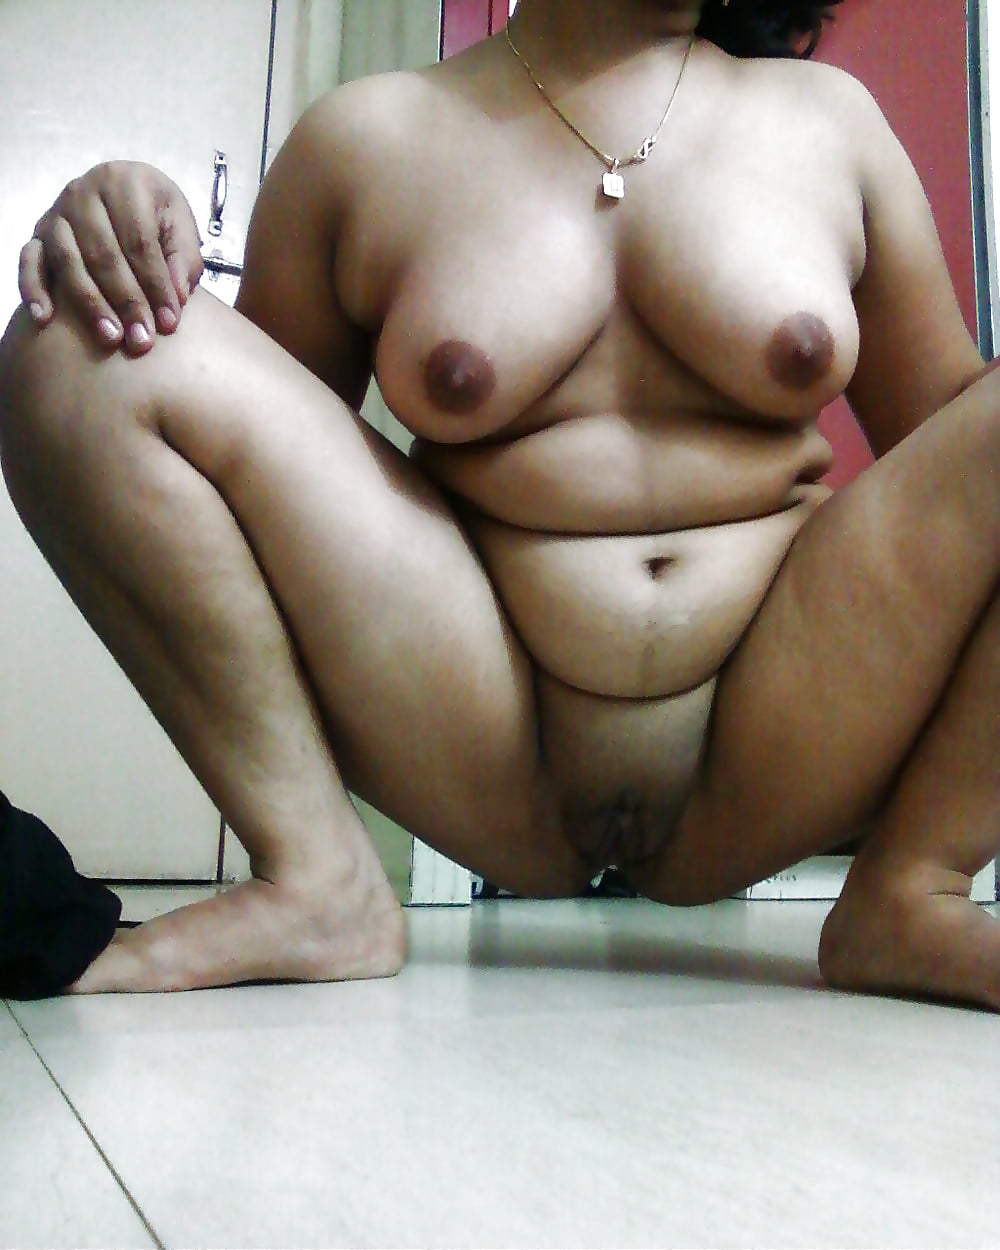 Tamil Wife Pissing Outdoor For Her Neighborhood